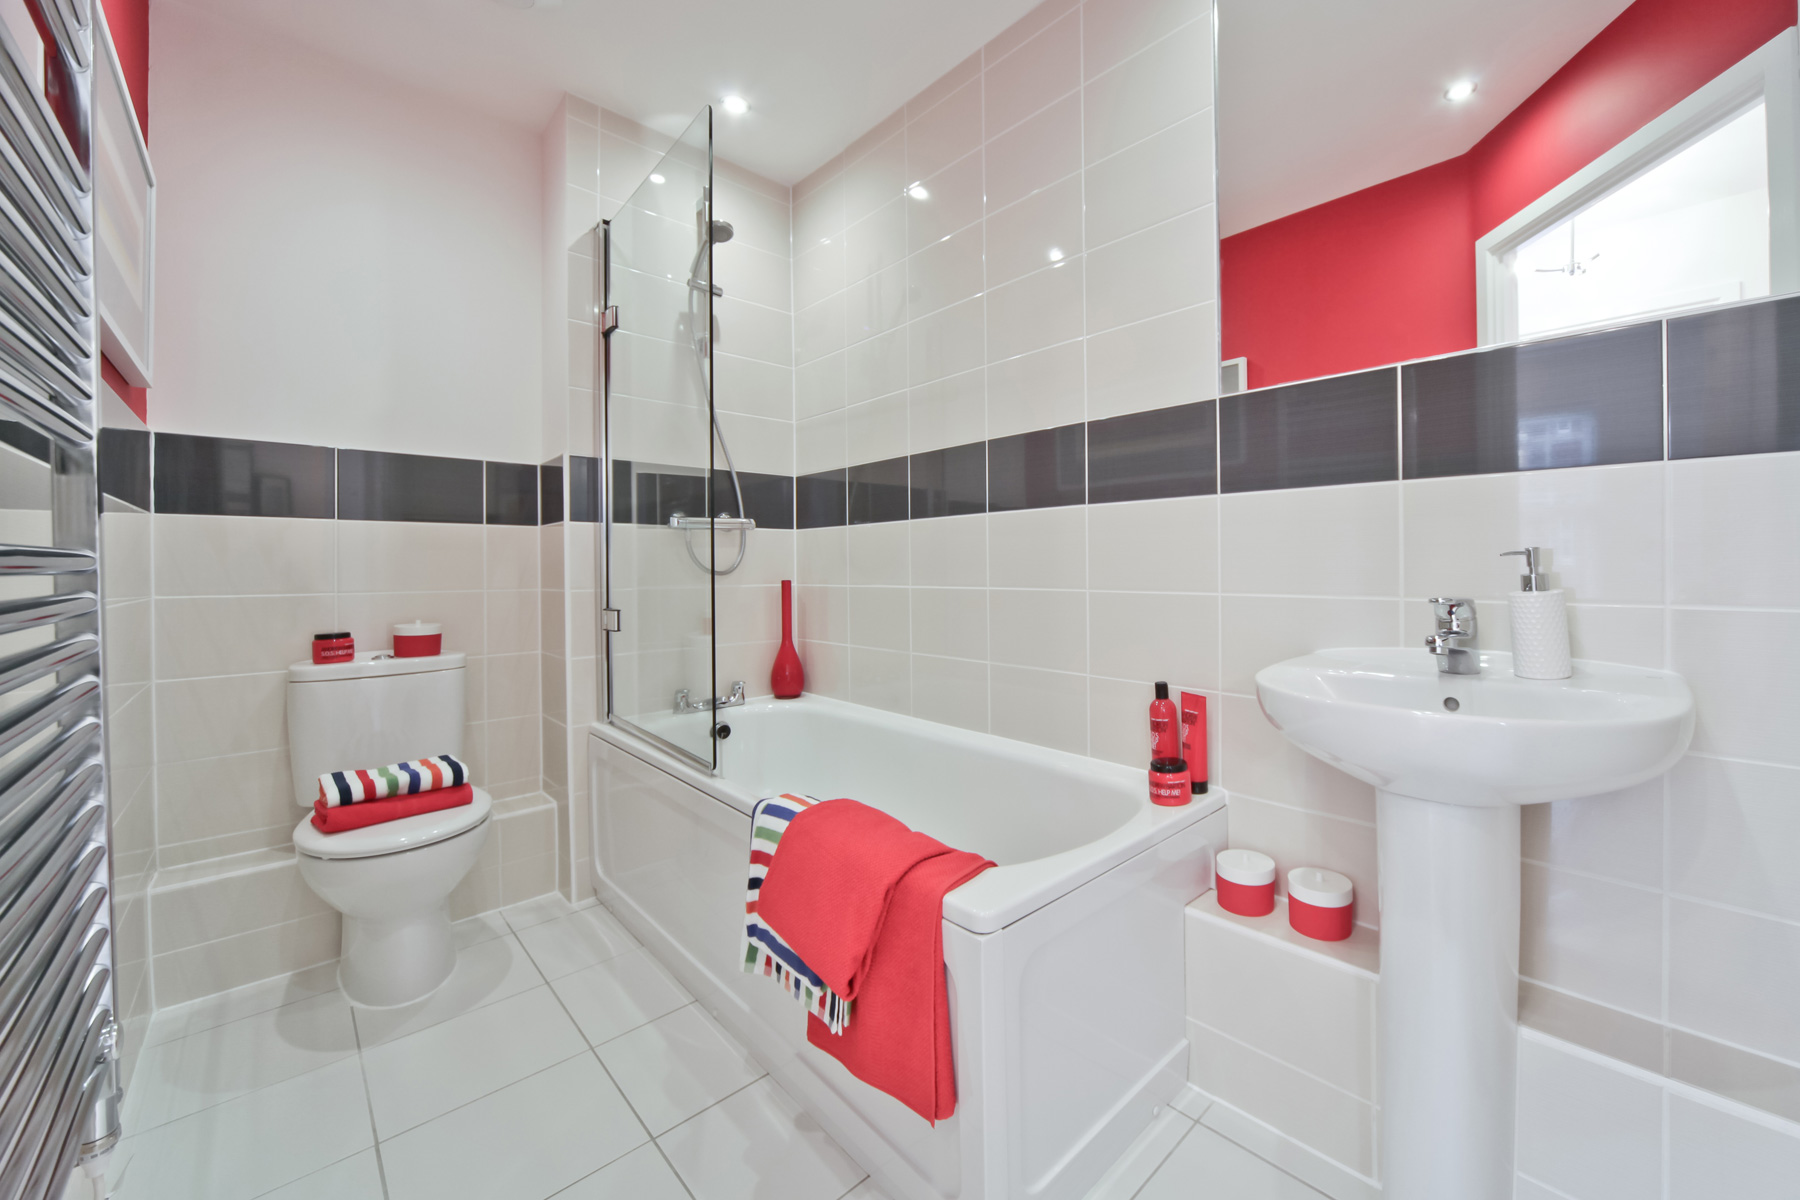 Typical Taylor Wimpey apartment bathroom.